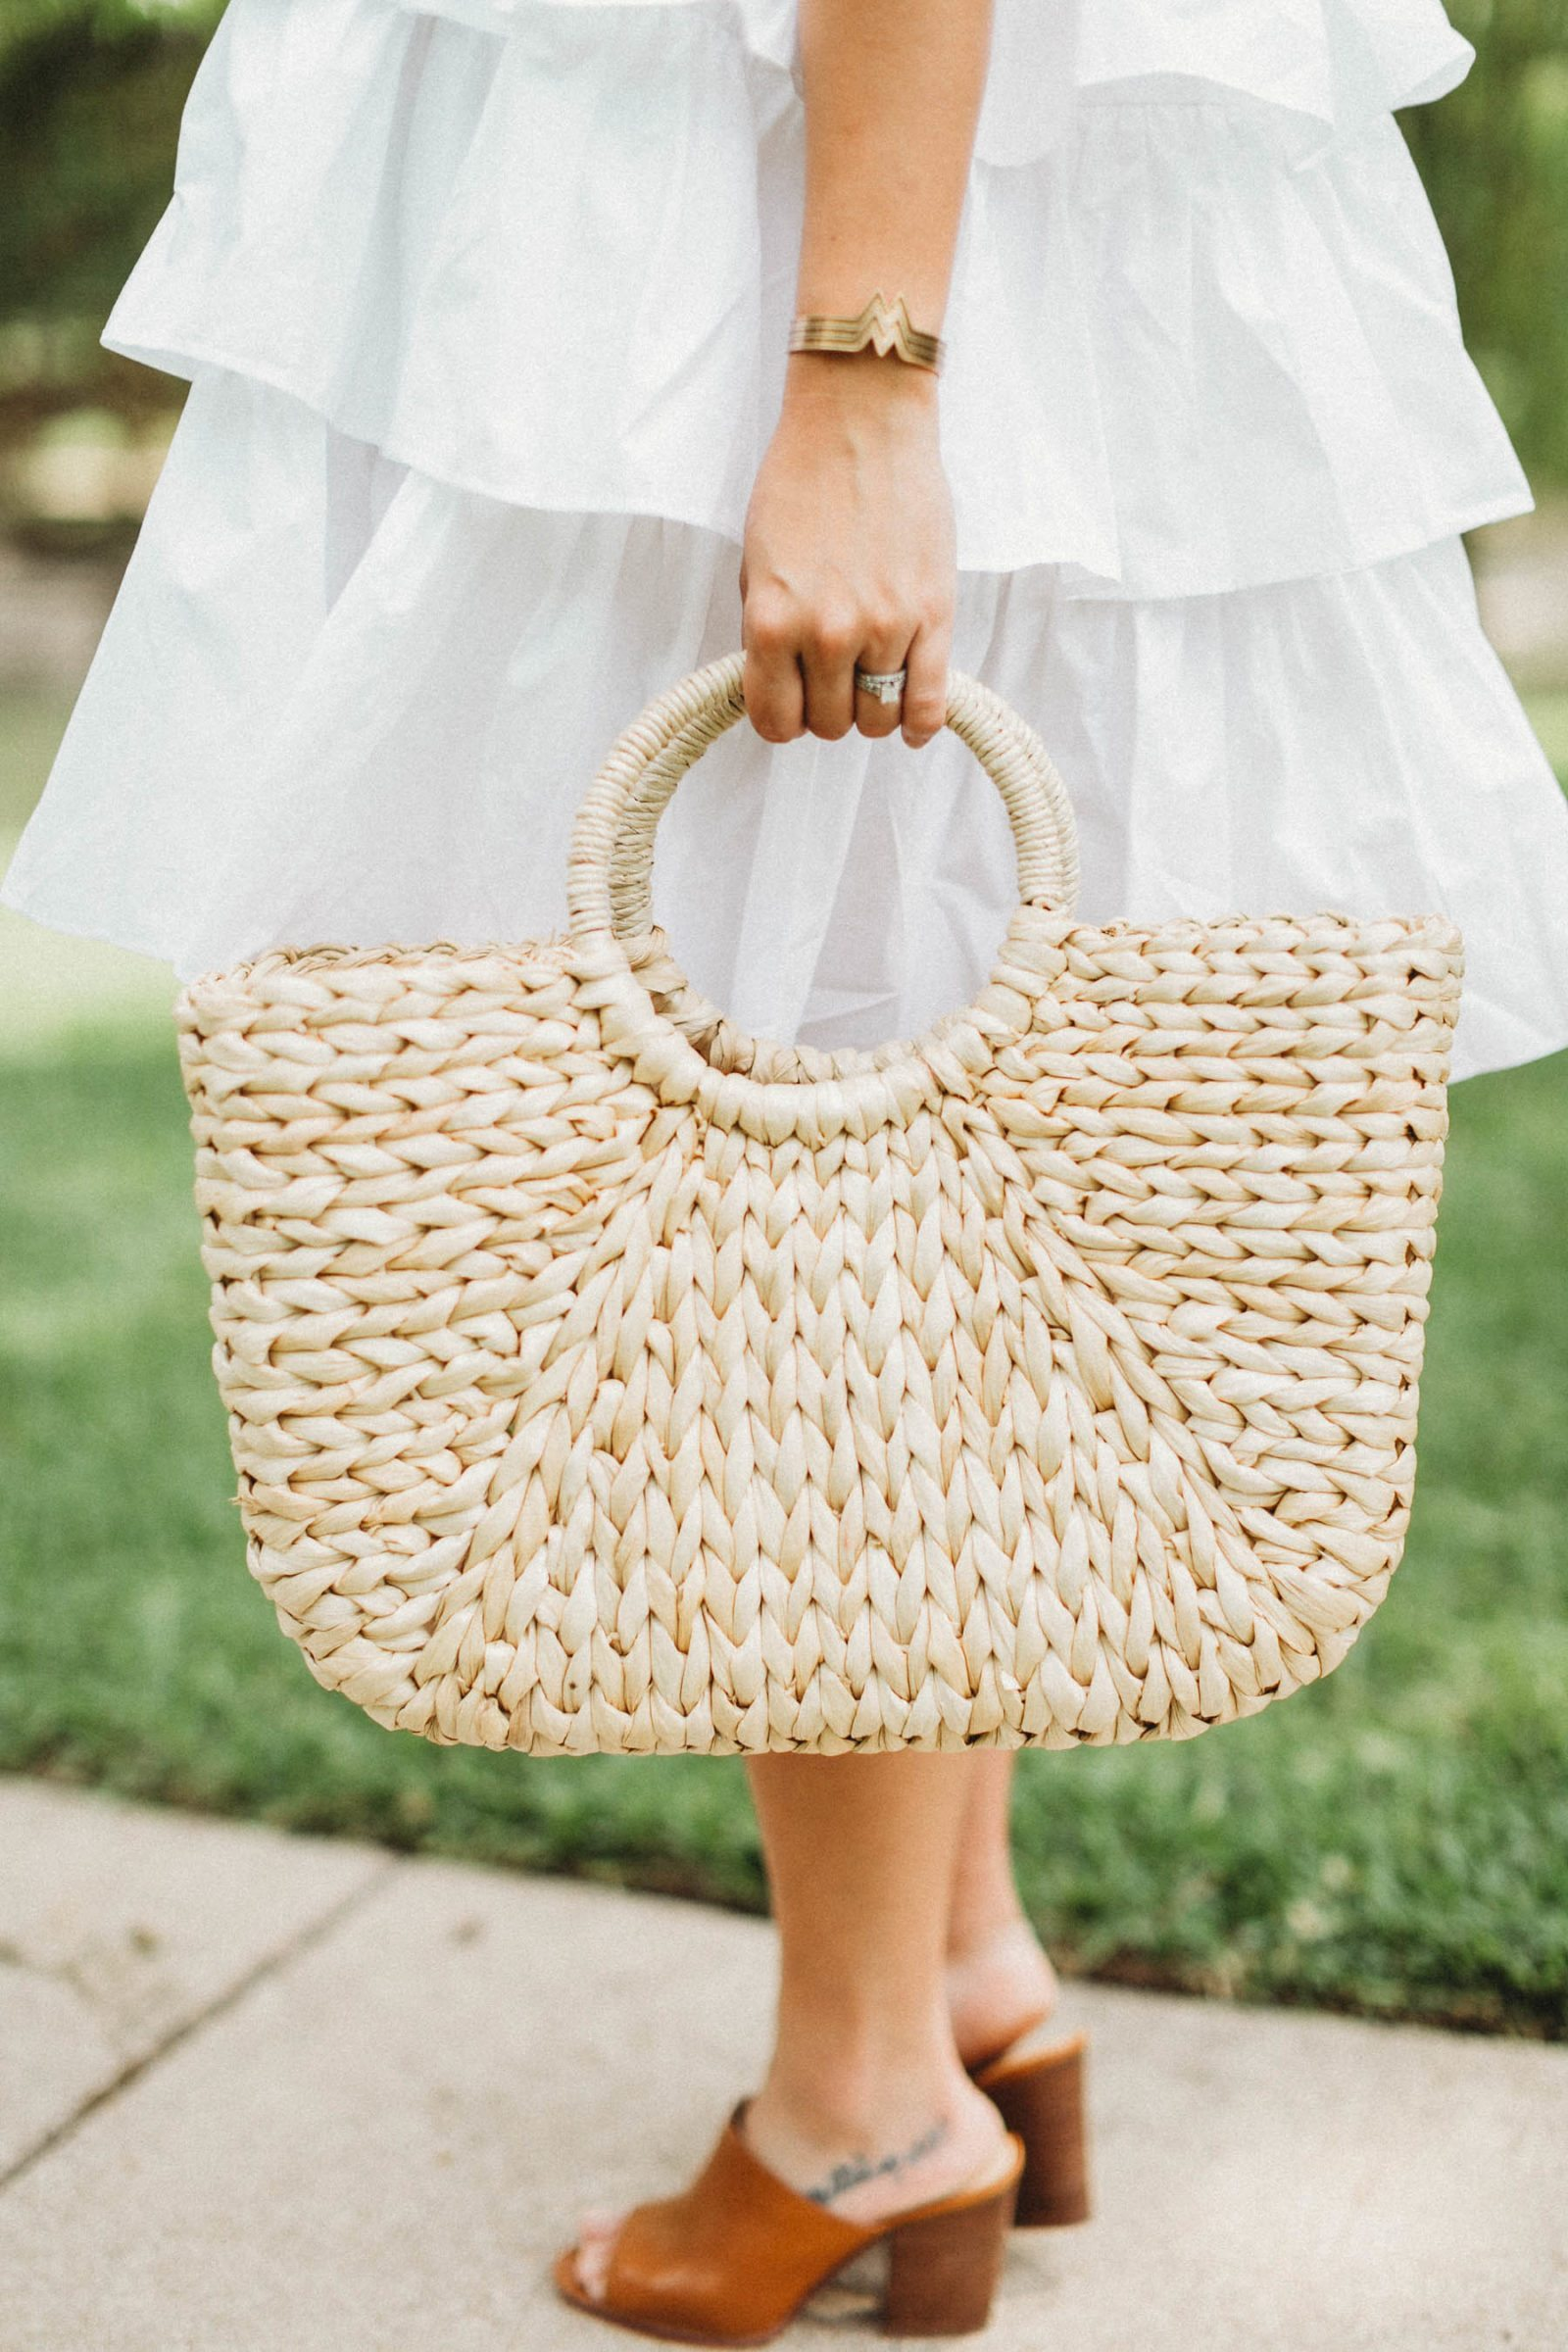 Straw Tote Bag from Hat Attack